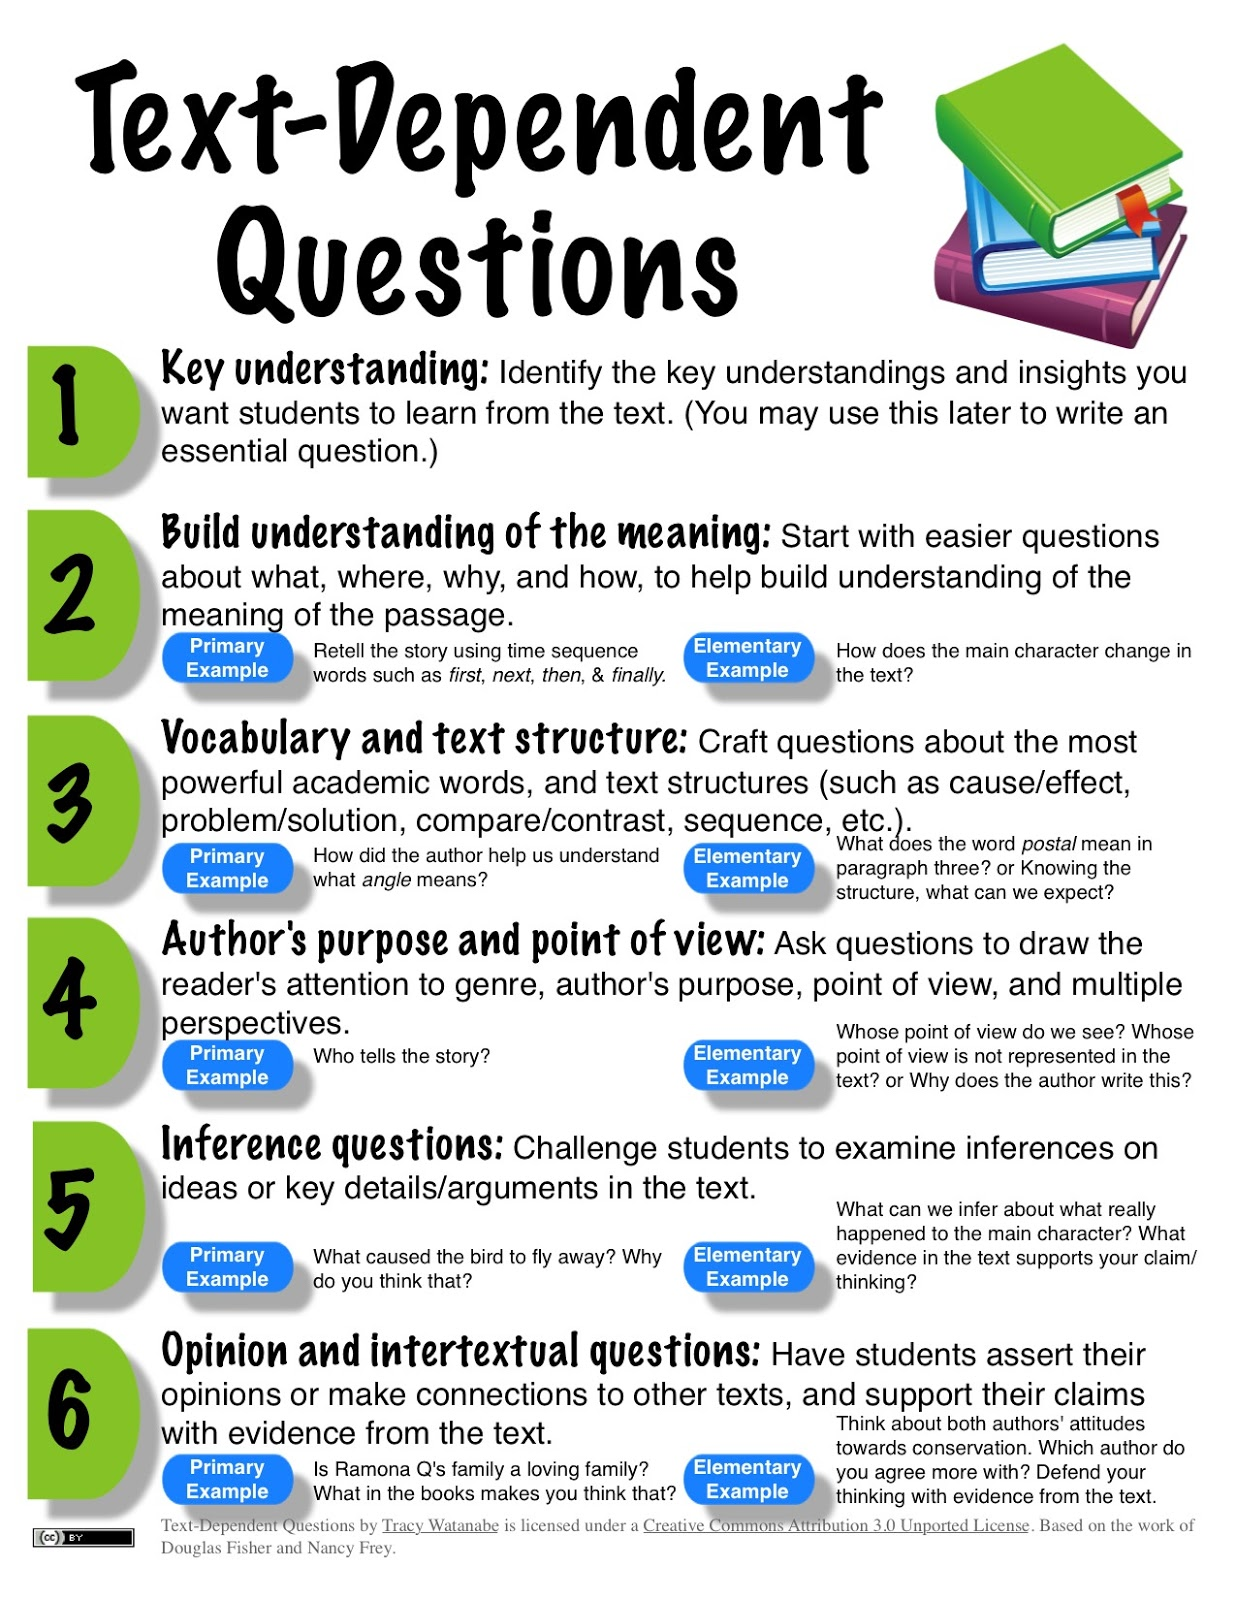 Close Reading Requires Student Effort